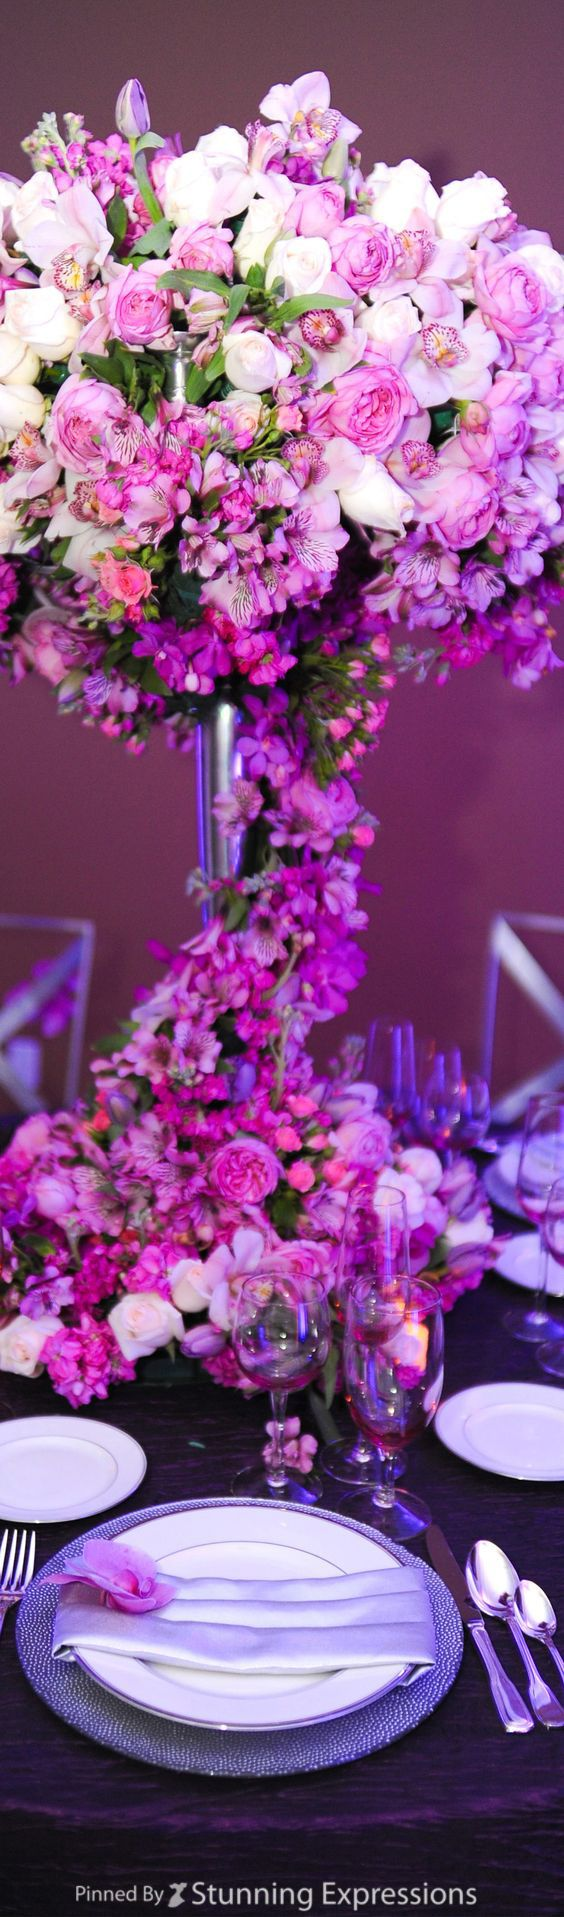 Tall centerpiece  Tall CenterpieceFlower CenterpiecesCentrepiecesWedding  CenterpiecesWedding ReceptionsReception  319 best Over the Top   Tall Wedding Centerpieces images on  . Flower Centerpieces For Wedding Reception. Home Design Ideas